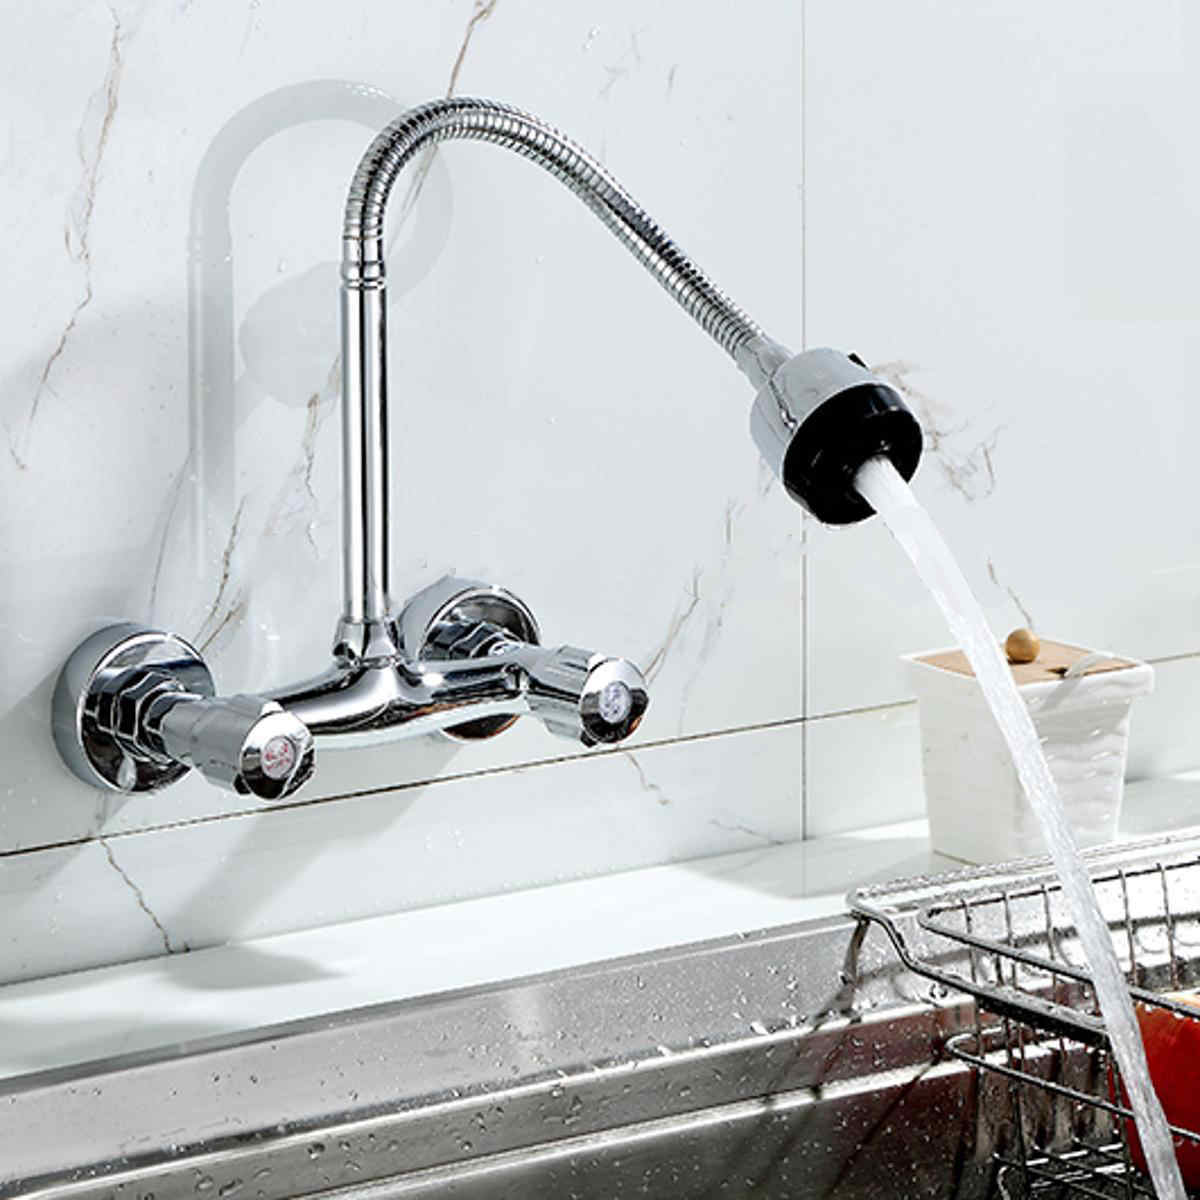 Us 26 94 35 Off Mayitr Wall Mount Kitchen Sink Faucet 360 Degree Pipe Swivel Pull Down Spray Mixer Tap Chrome In Faucets